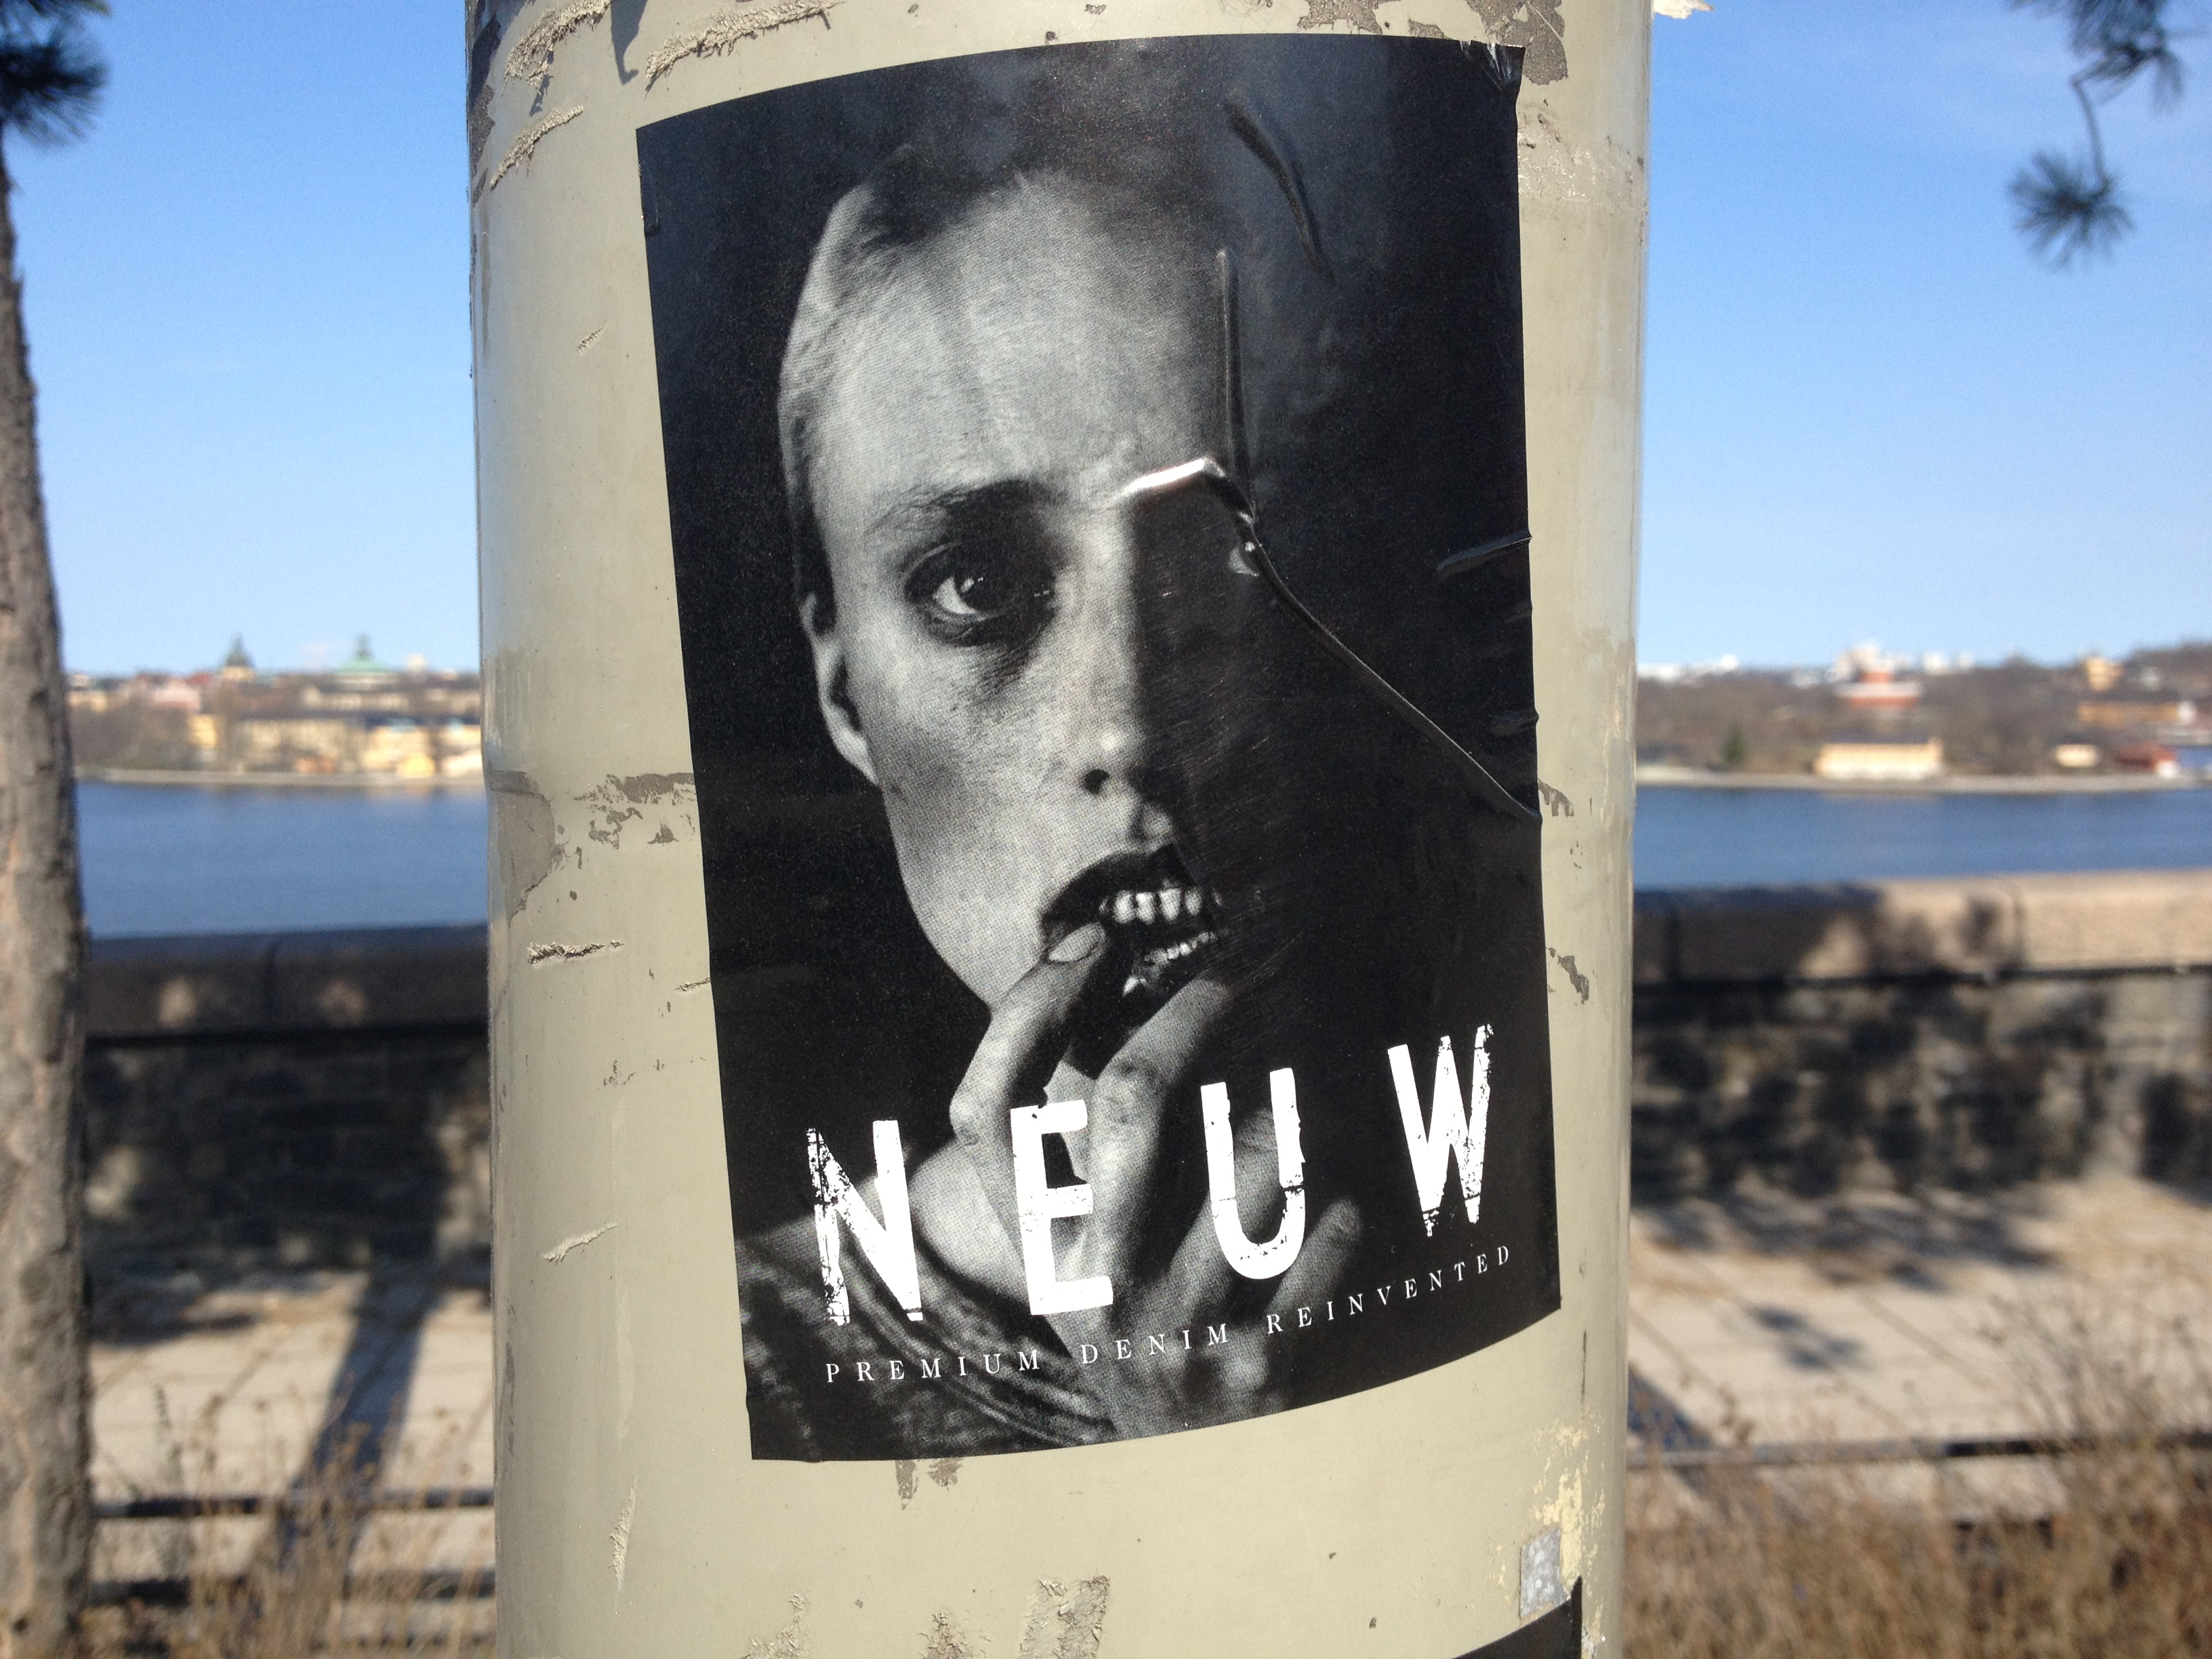 Neuw Denim stickers in stockholm